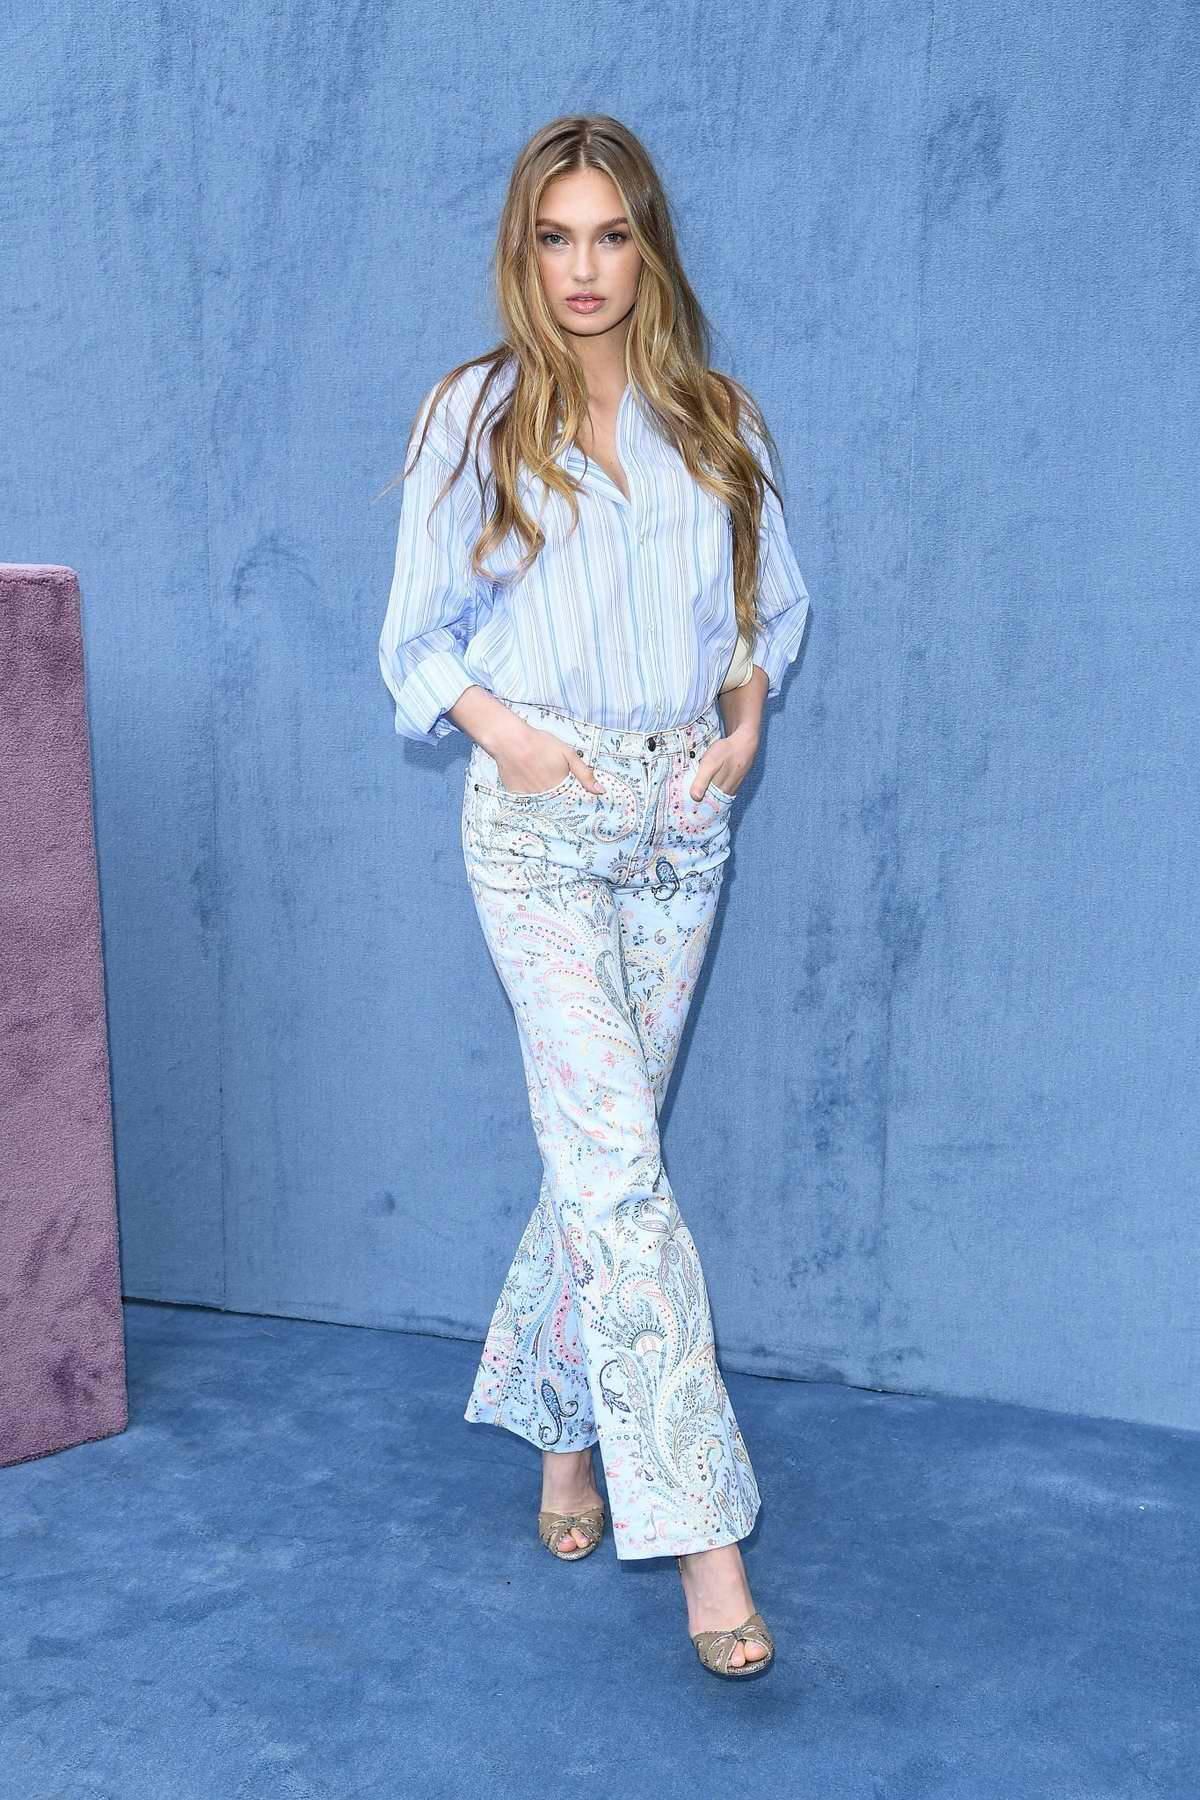 Romee Strijd attends the Etro fashion show, F/W 2020 during Milan Fashion Week in Milan, Italy